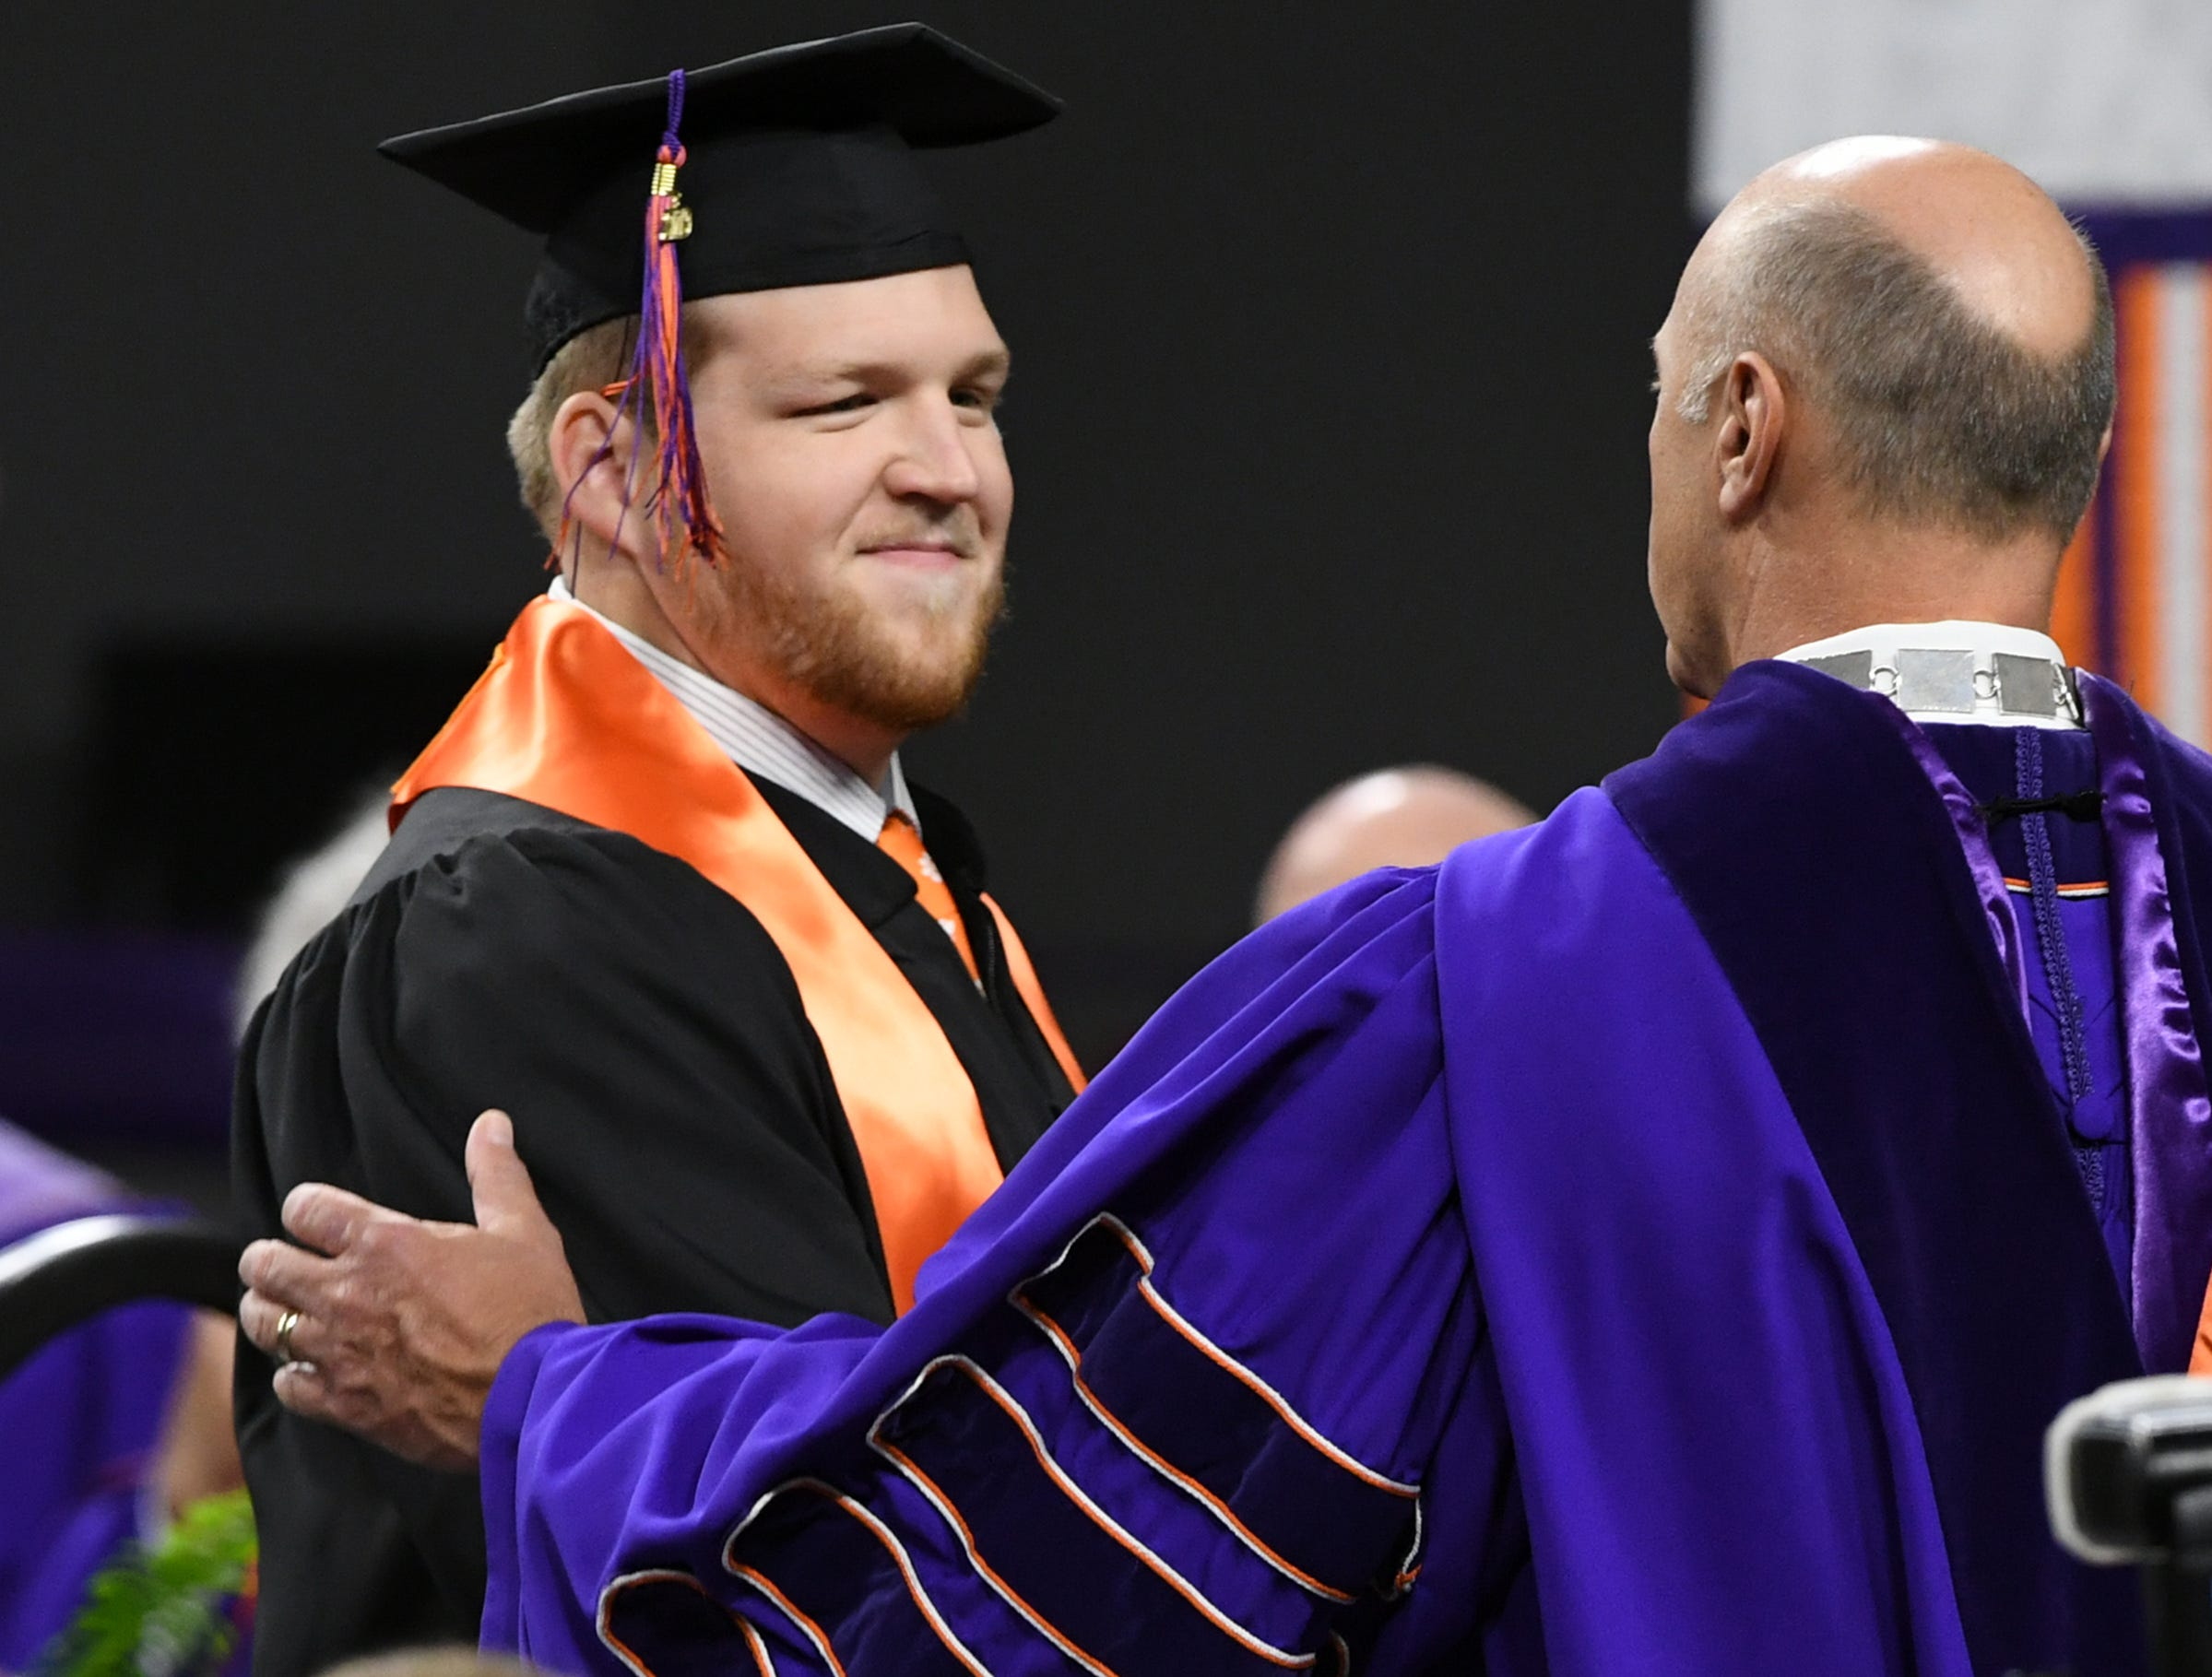 Logan Tisch shakes hands with President Jim Clements as he gets his bachelor of science in plant and environmental sciences during Clemson University commencement ceremonies in Littlejohn Coliseum in Clemson Friday, May 10, 2019.